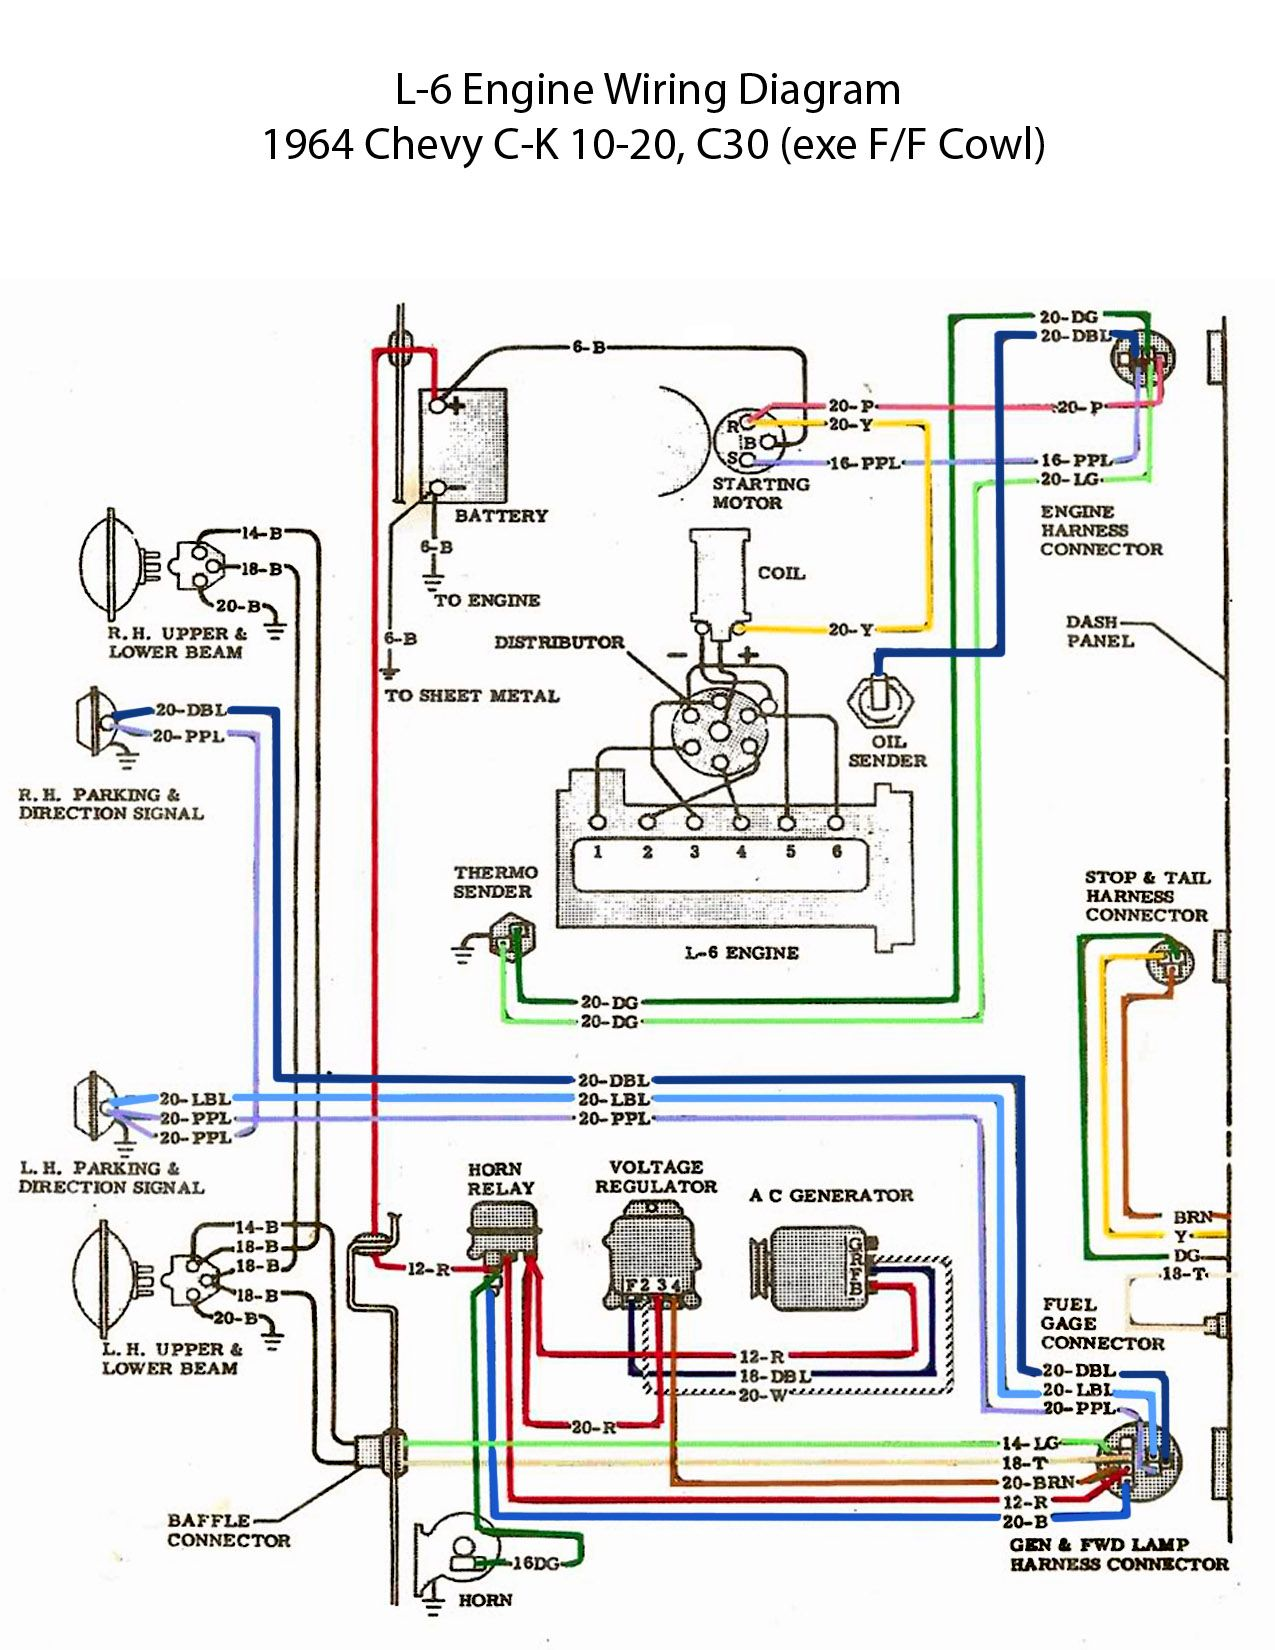 52f445b9f6cba1e2ba90979cb5234ed8 electric l 6 engine wiring diagram '60s chevy c10 wiring  at reclaimingppi.co